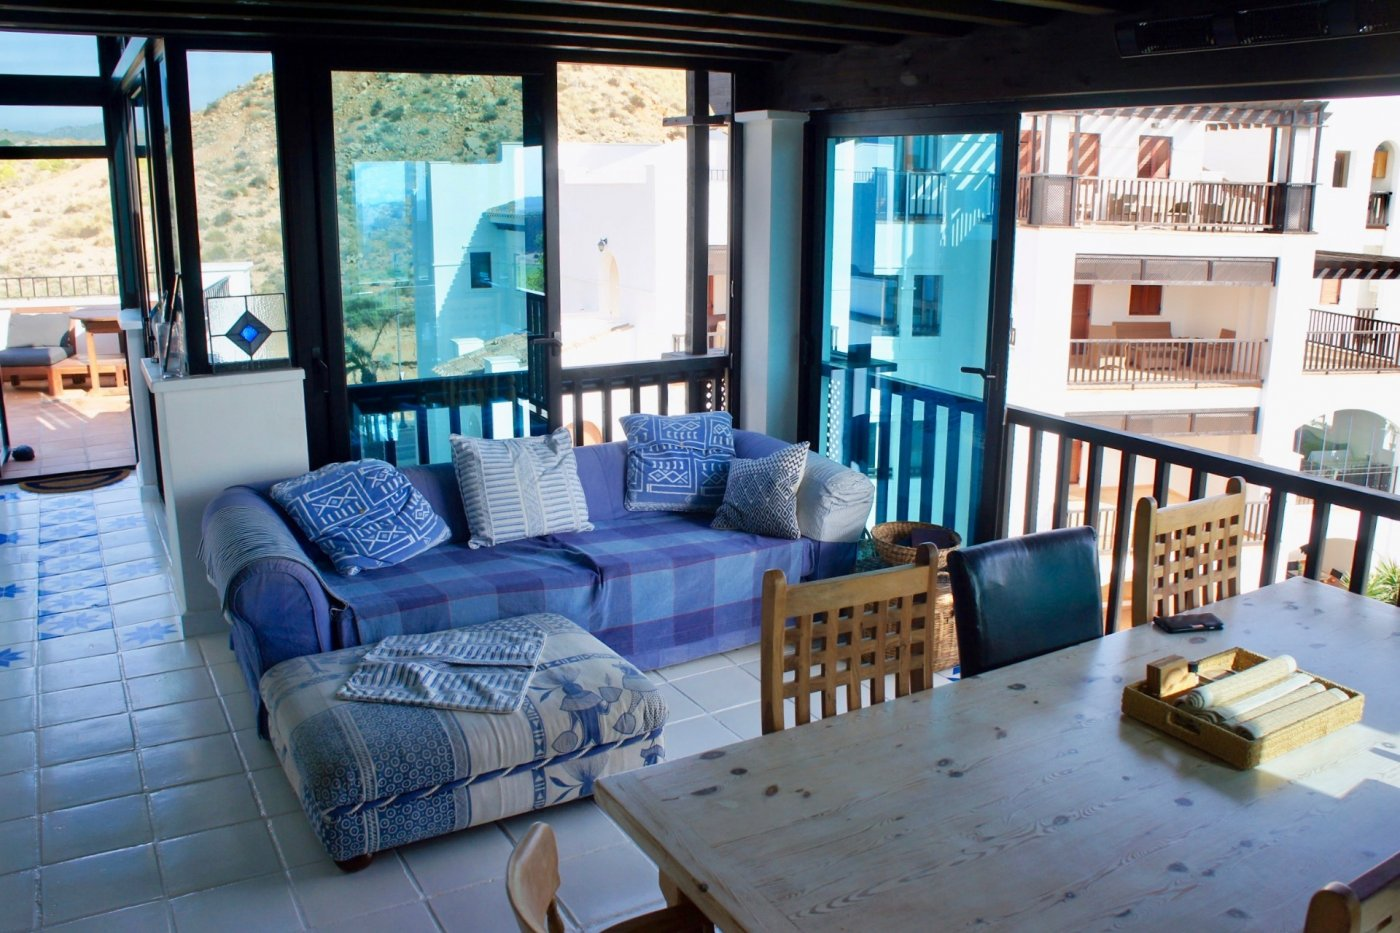 Image 3 Apartment ref 3265-03023 for sale in El Valle Golf Resort Spain - Quality Homes Costa Cálida